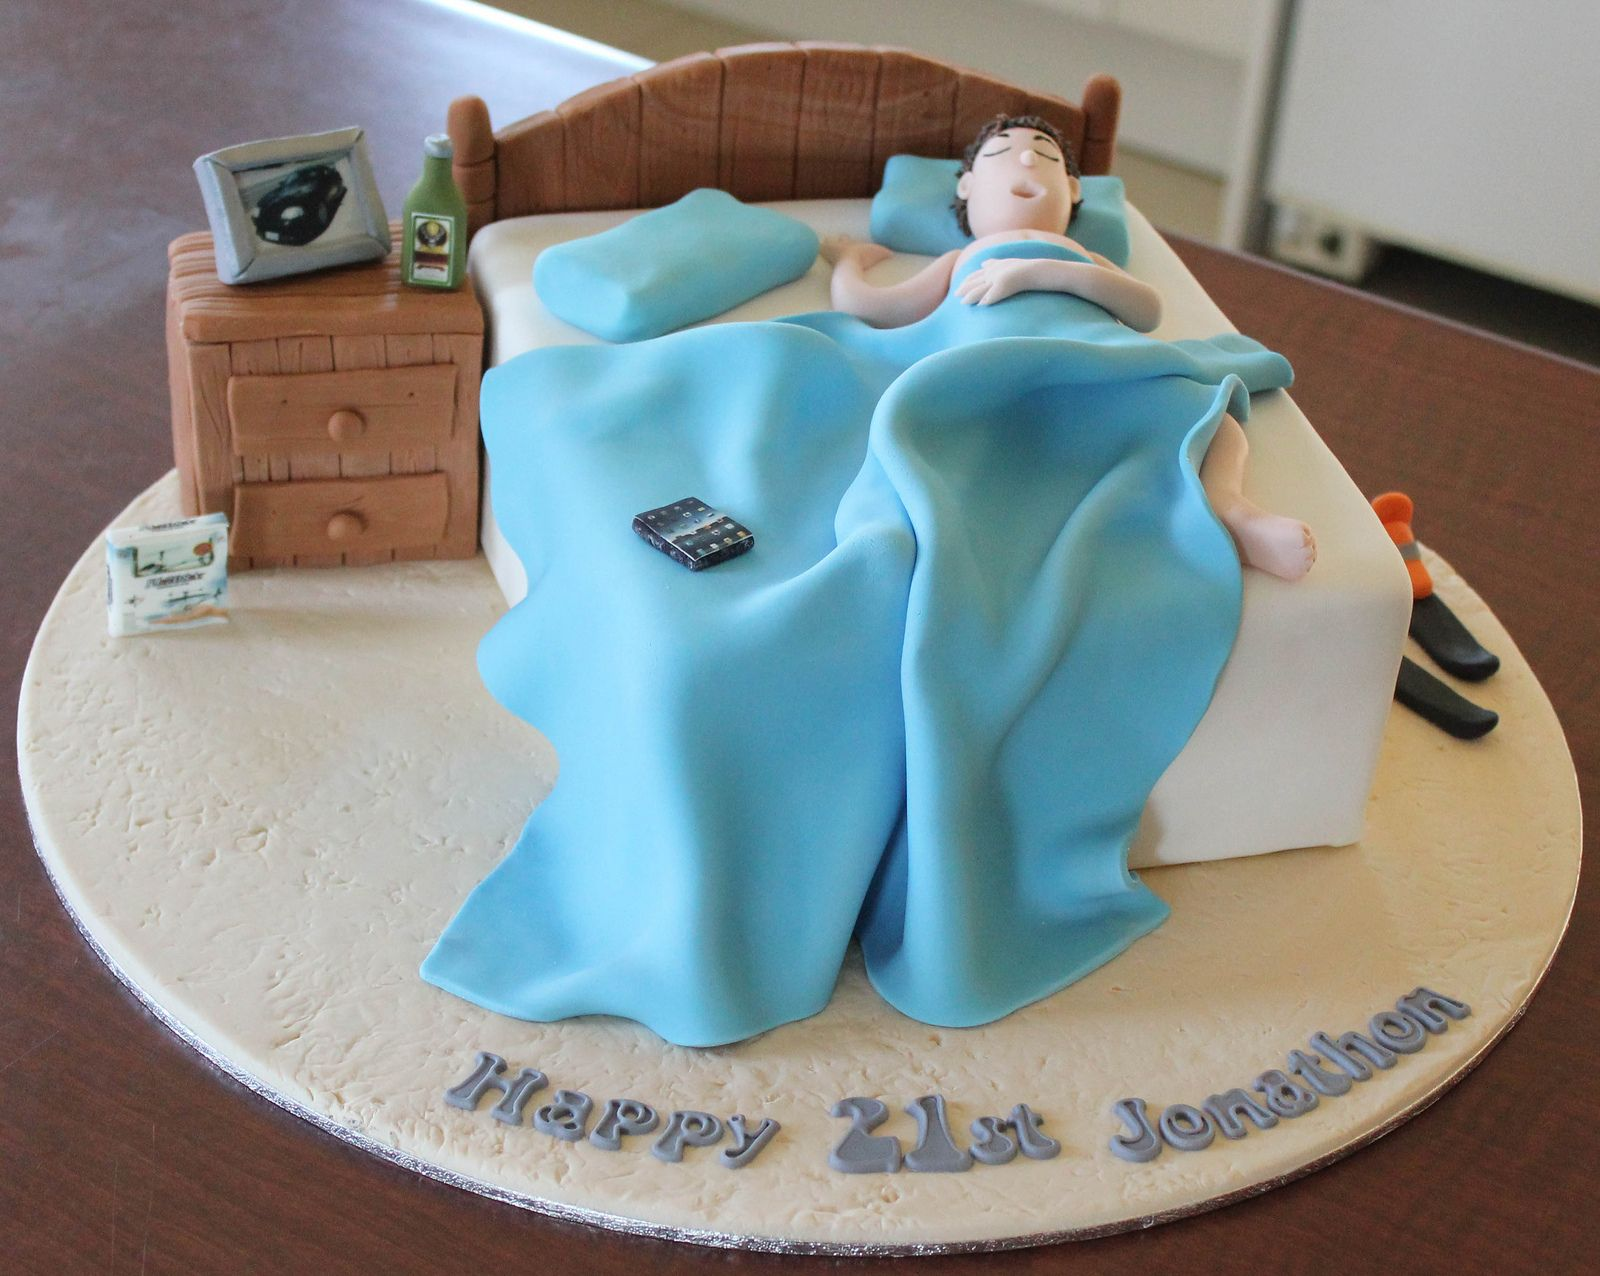 Some interesting kids birthday cake ideas different types of kids - Teenage Bed Cake